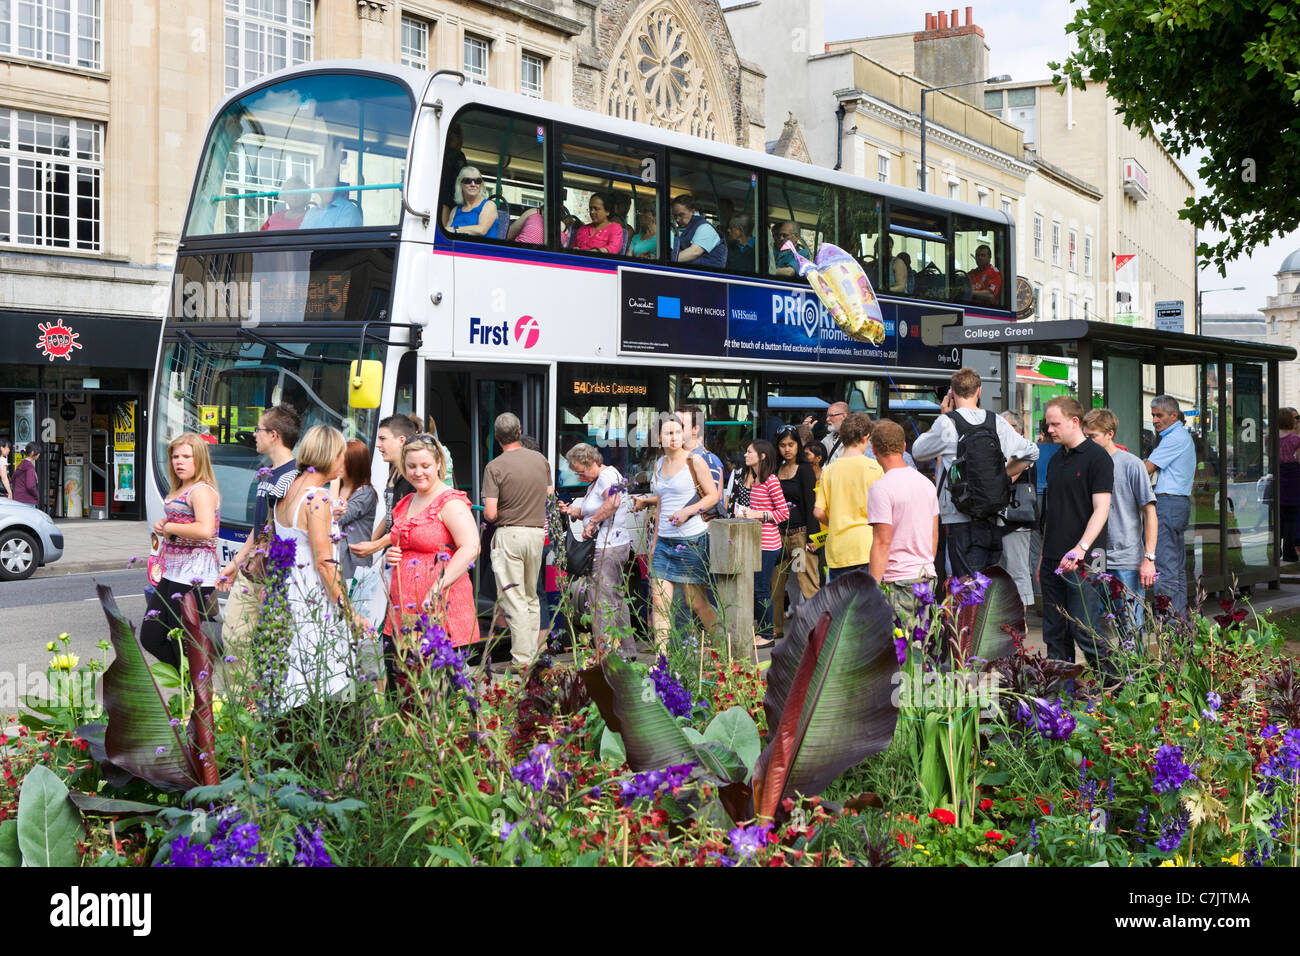 Crowded bus stop on College Green in the city centre, Bristol, Avon, UK - Stock Image